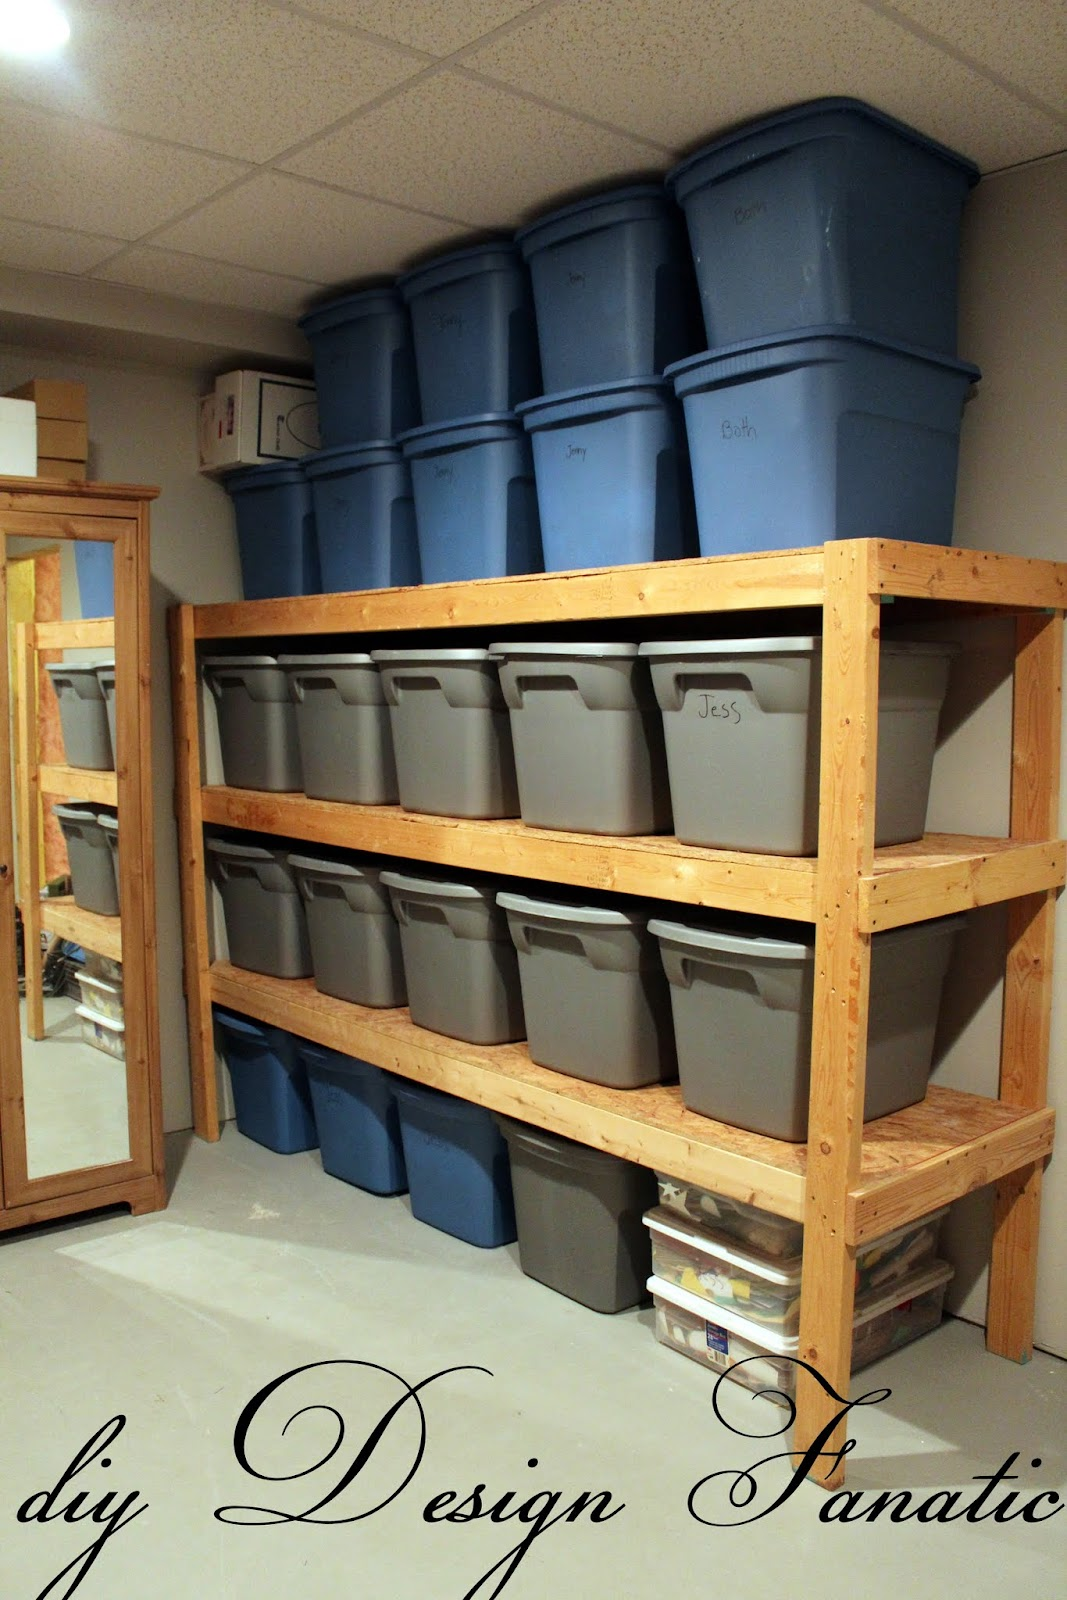 diy Design Fanatic: DIY STORAGE~ HOW TO STORE YOUR STUFF